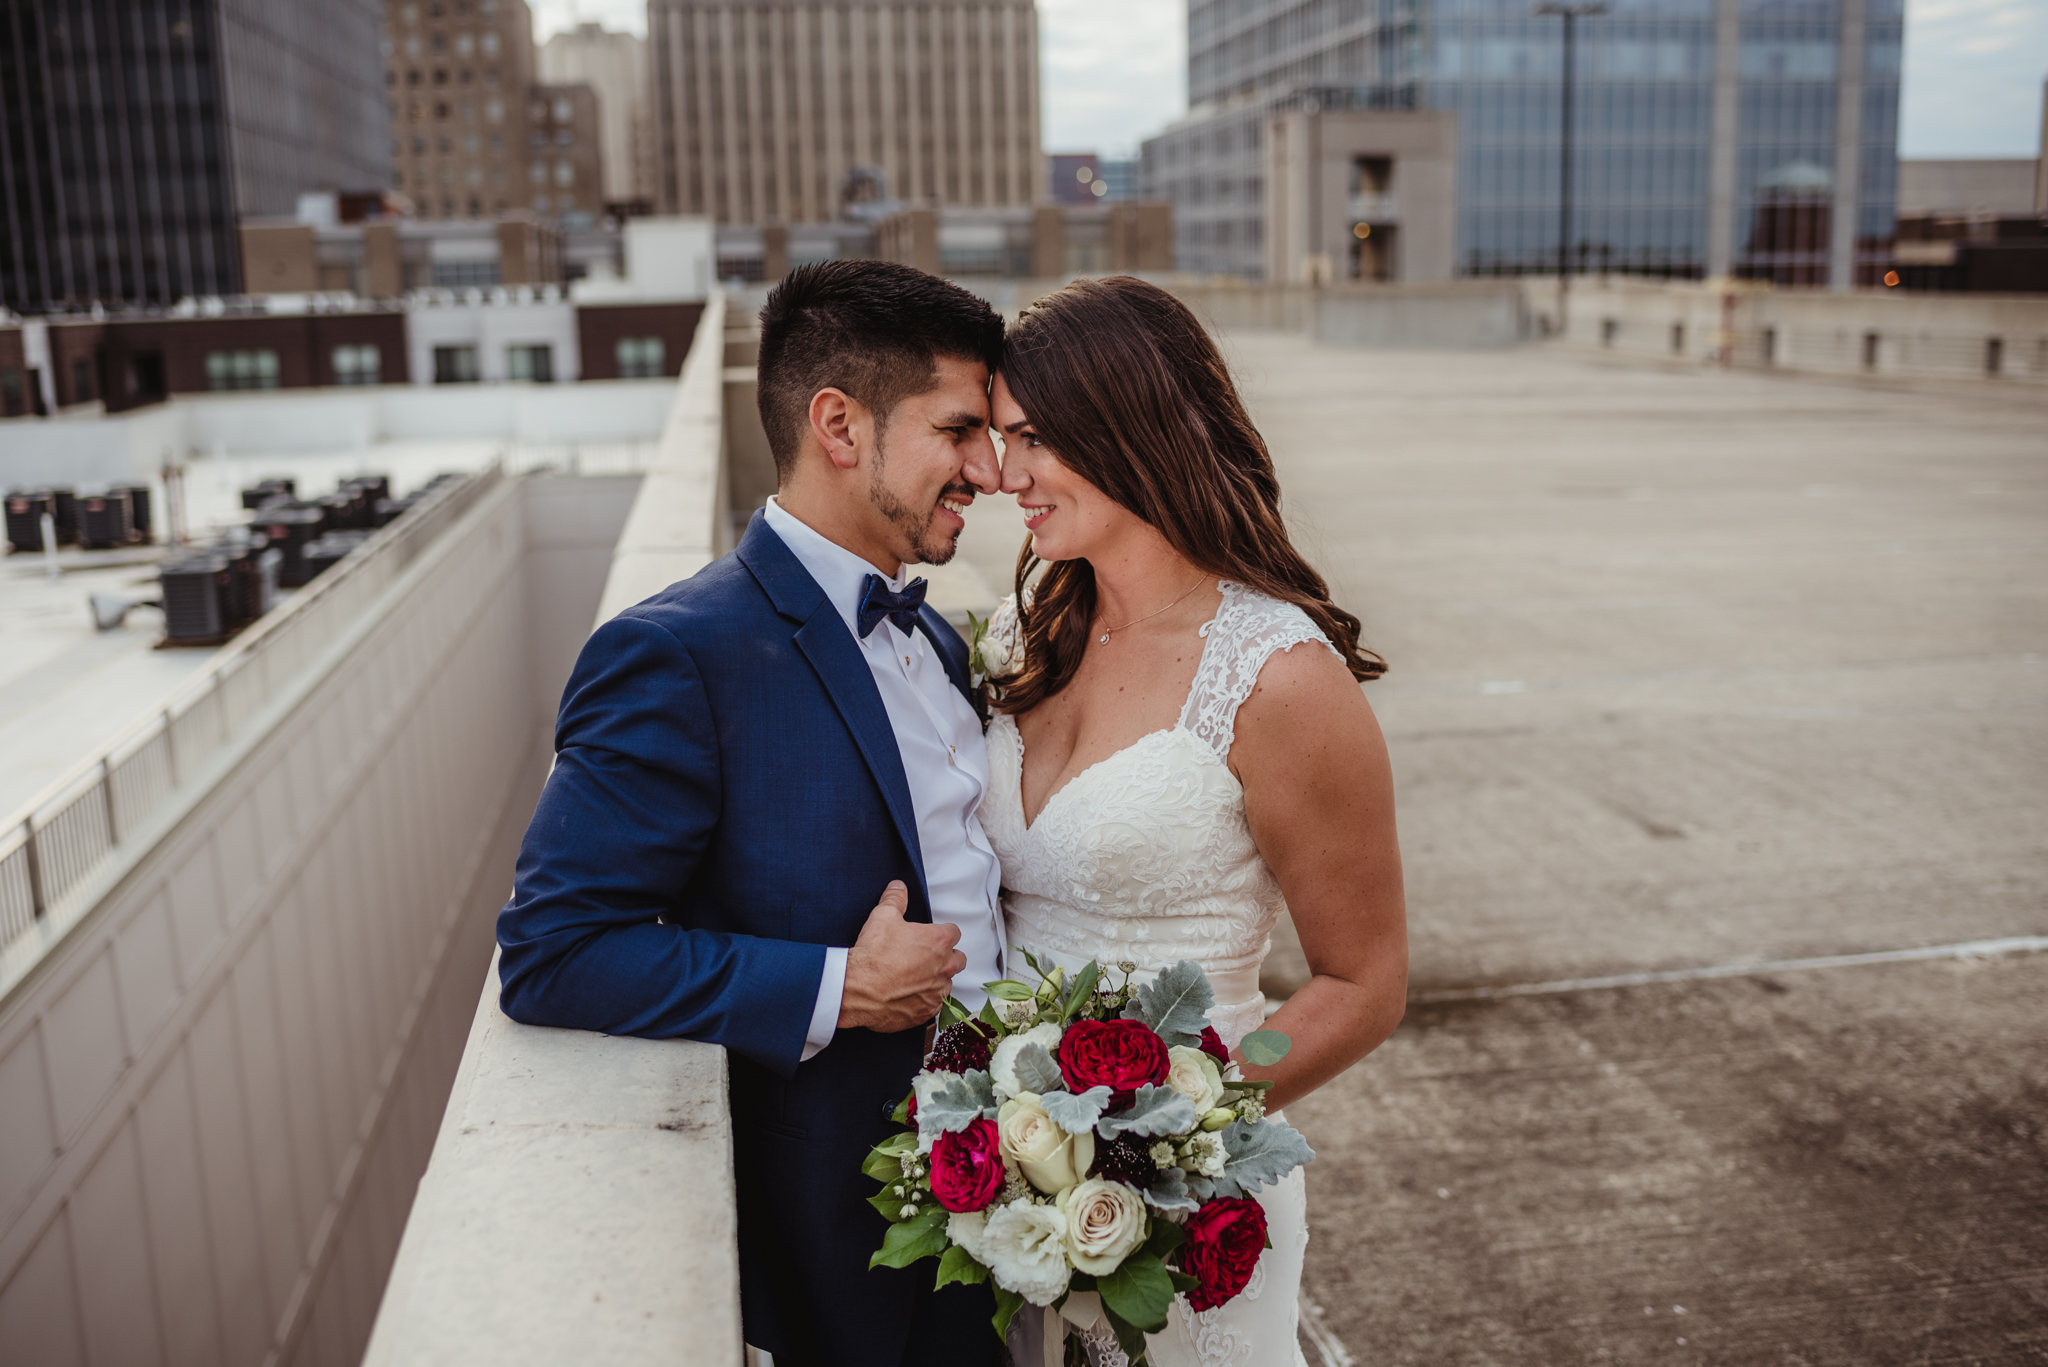 Raleigh-wedding-photographer-bride-and-groom-portraits-rooftop-rose-trail-images.jpg